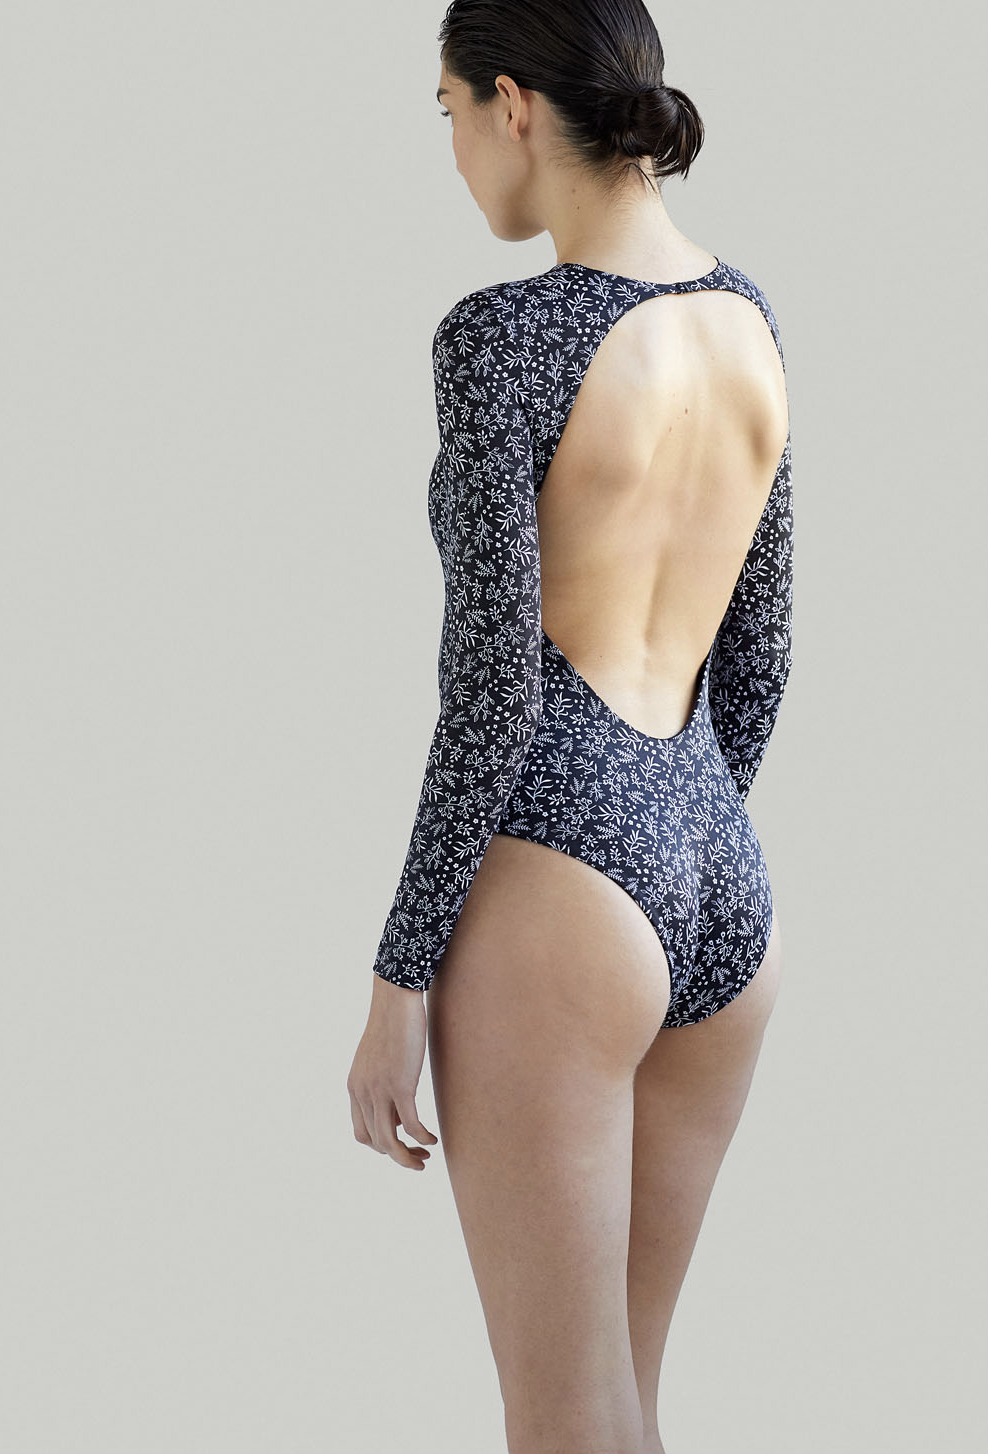 NOW_THEN Label - Eugenie Bodysuit SS'19